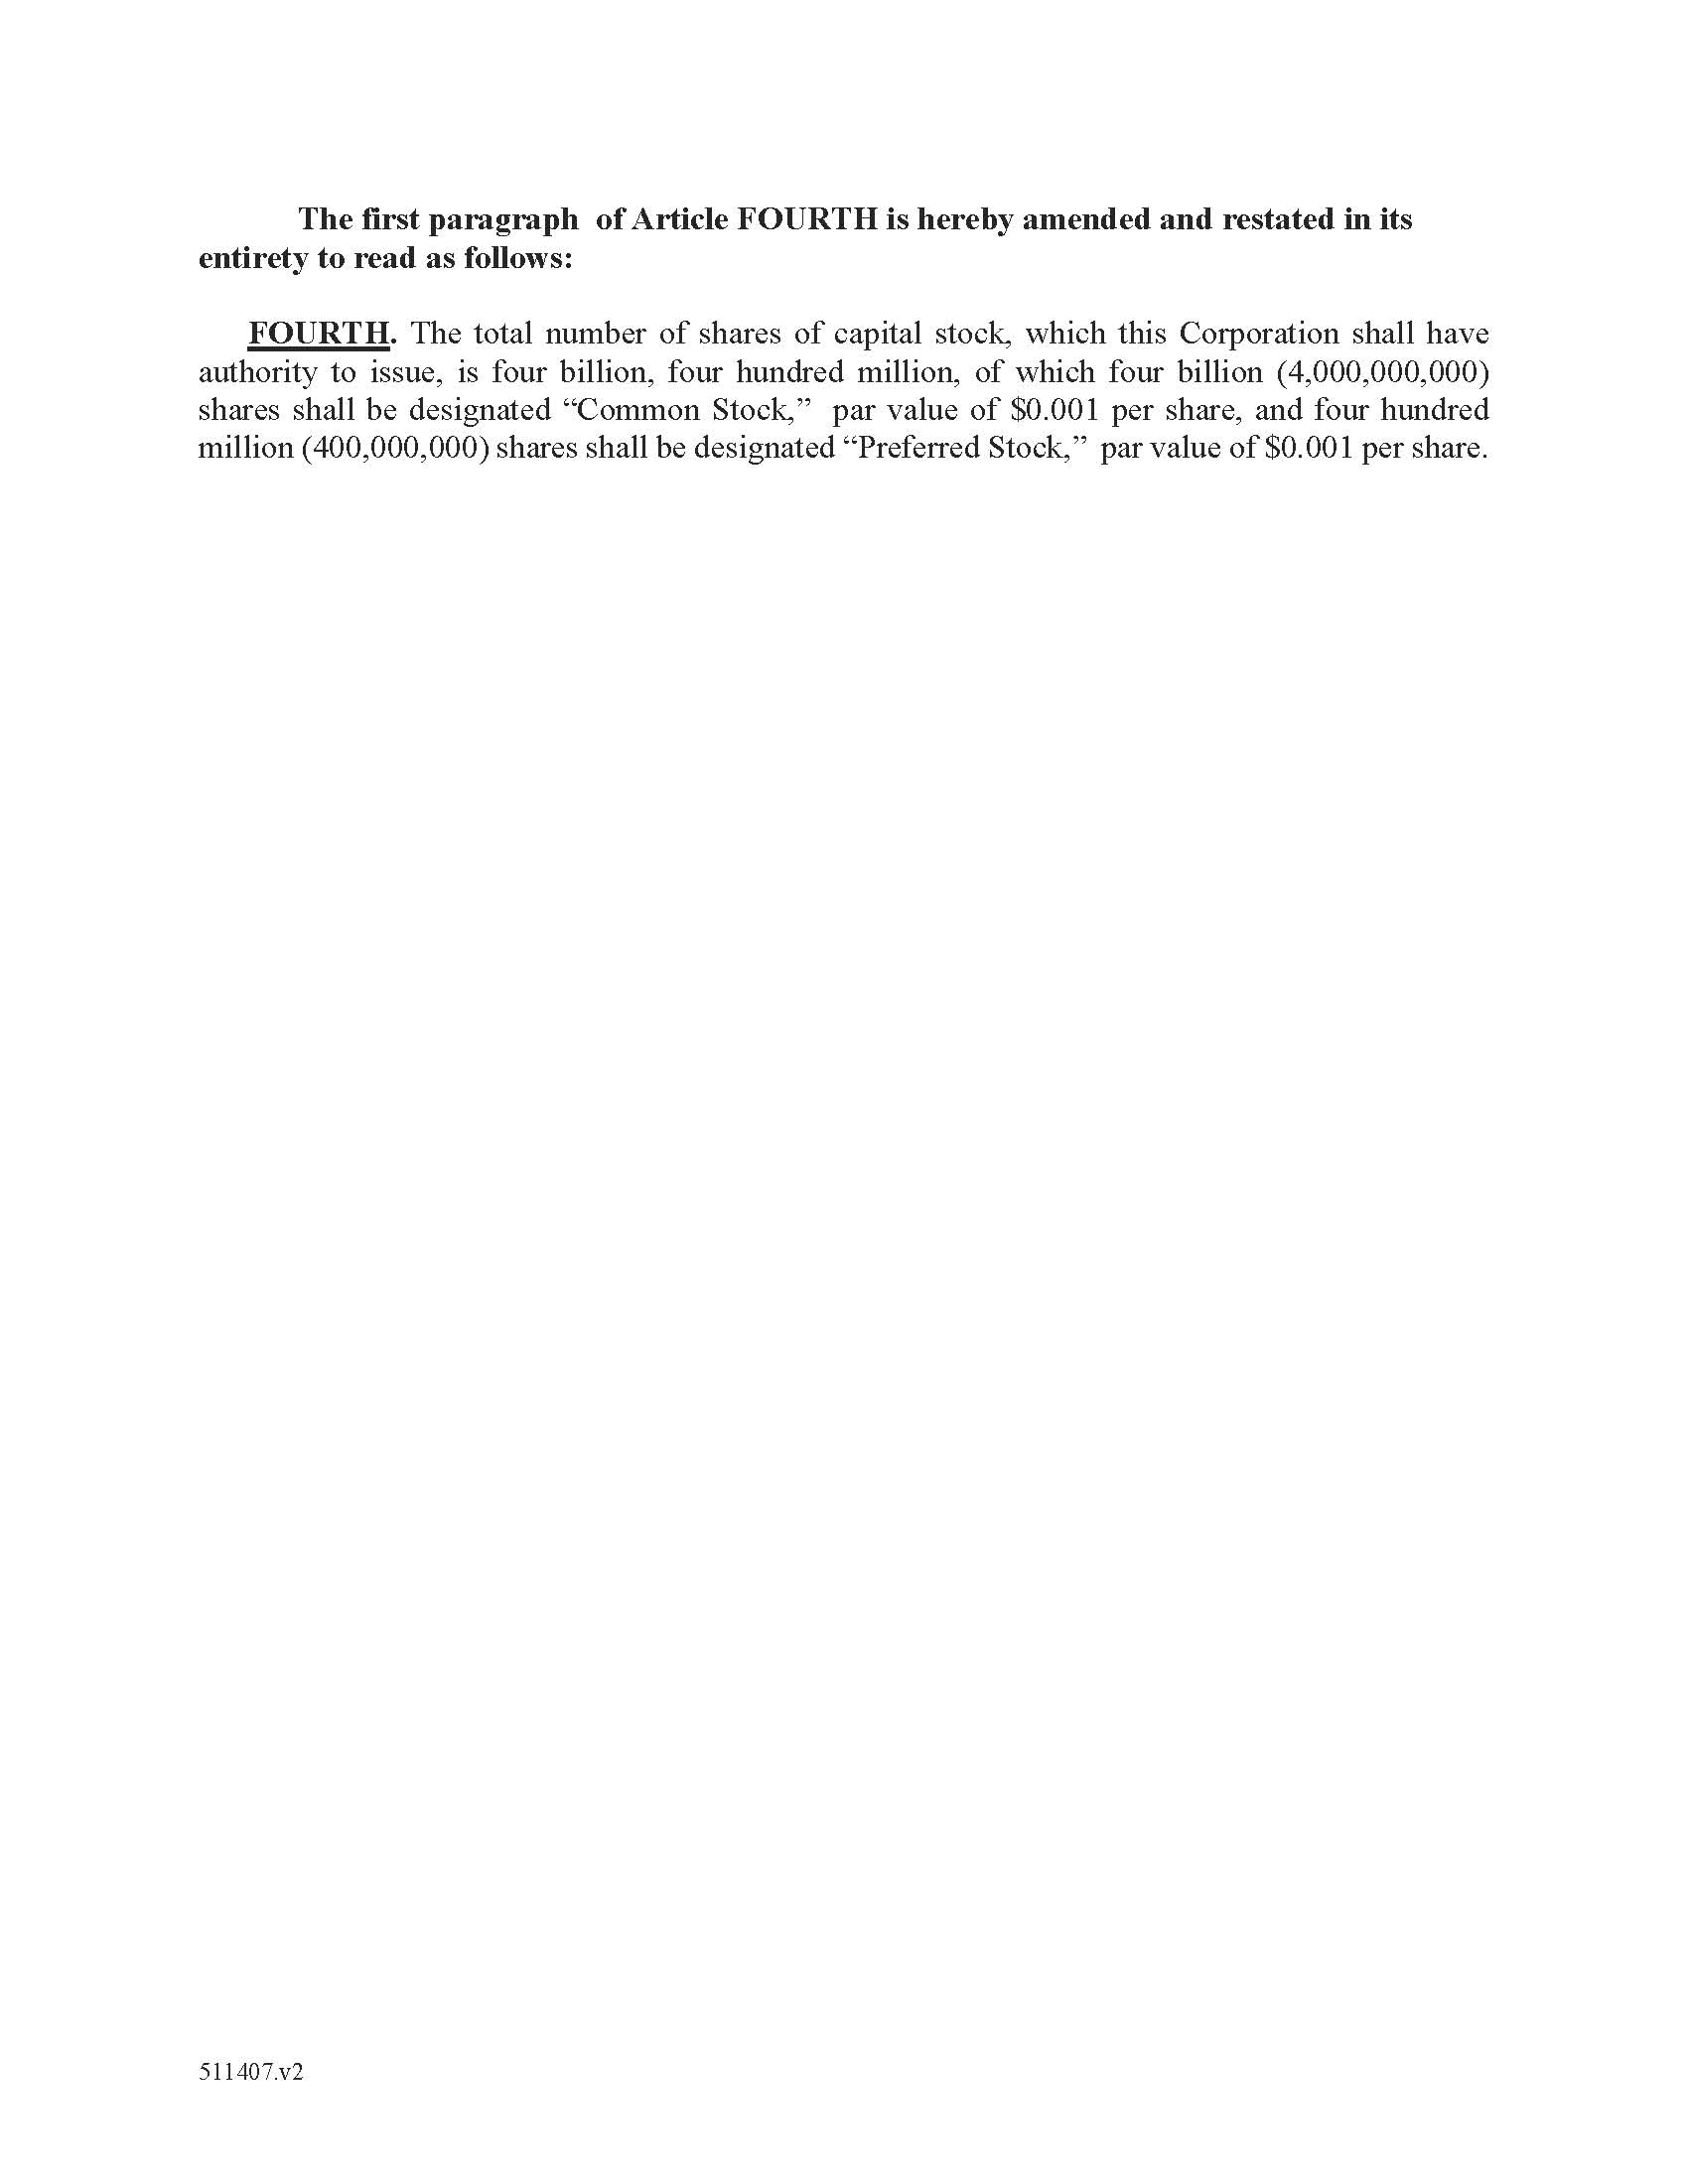 NAH - AUTHORZED SHARE AMENDMENT - EXECUTED AS OF 3.26.20 HOLD FOR FILING_PAGE_3.JPG